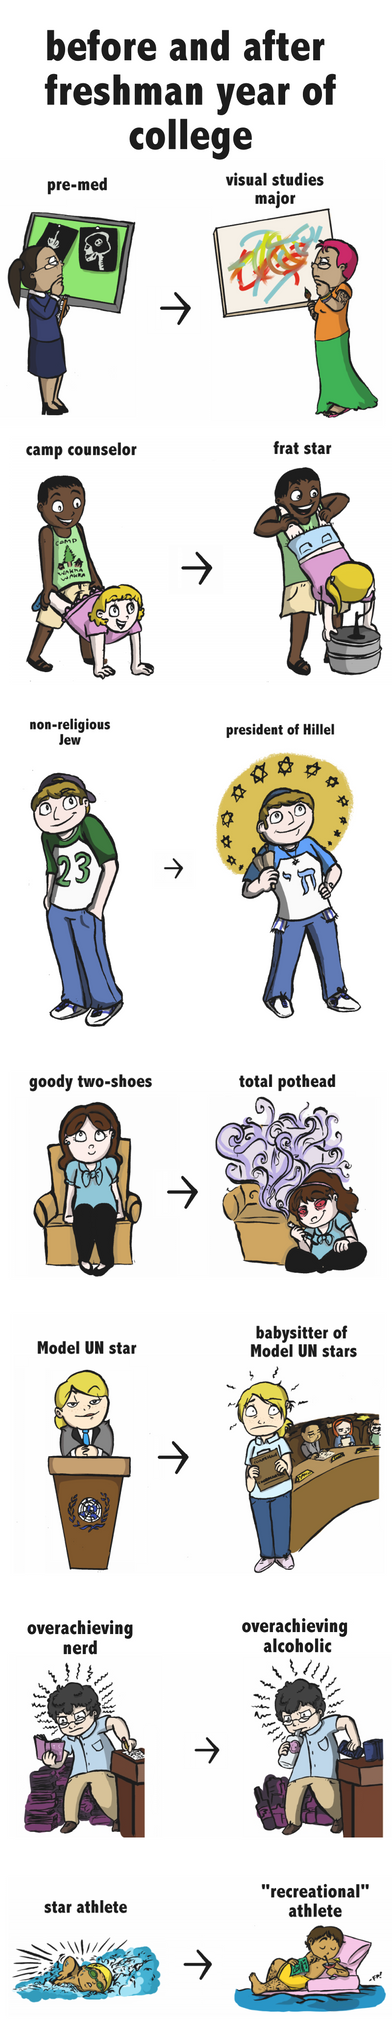 Before and After Freshman Year by fish-puddle